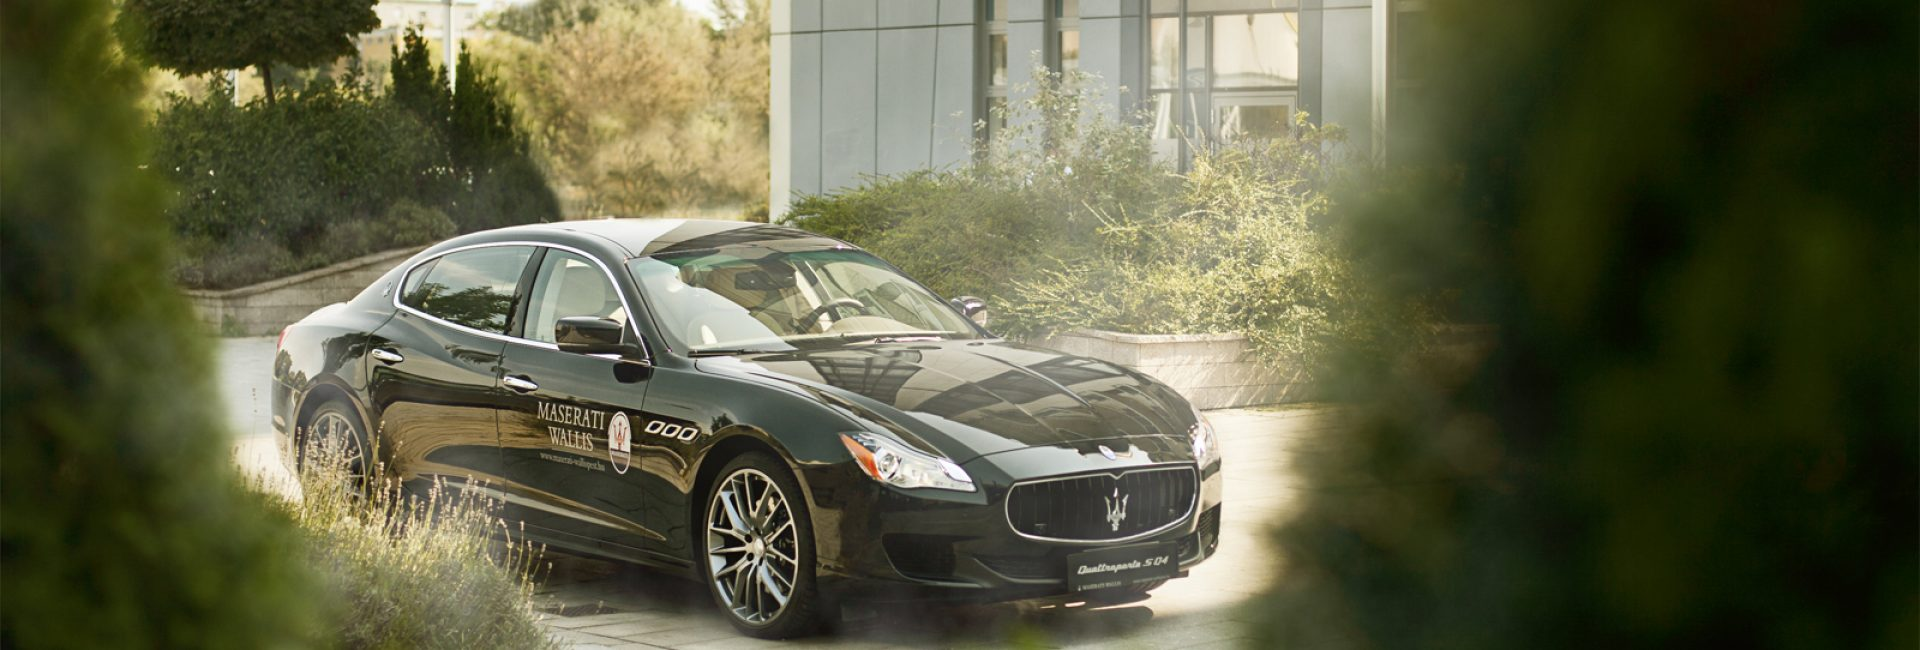 The Maserati, a bit of an editorial style